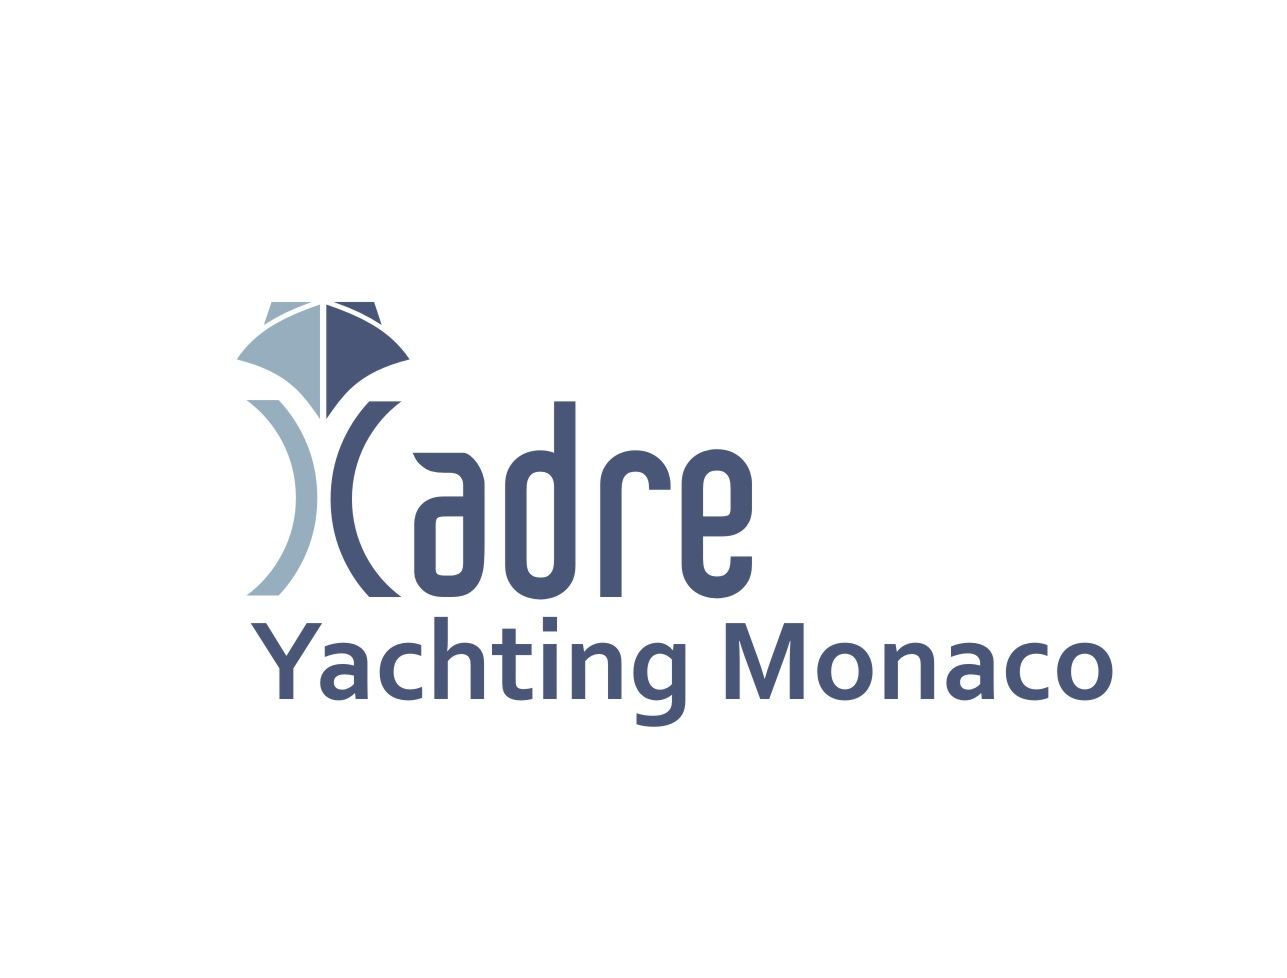 Logo Design by ggrando - Entry No. 335 in the Logo Design Contest New Logo Design for Cadre Yachting Monaco.